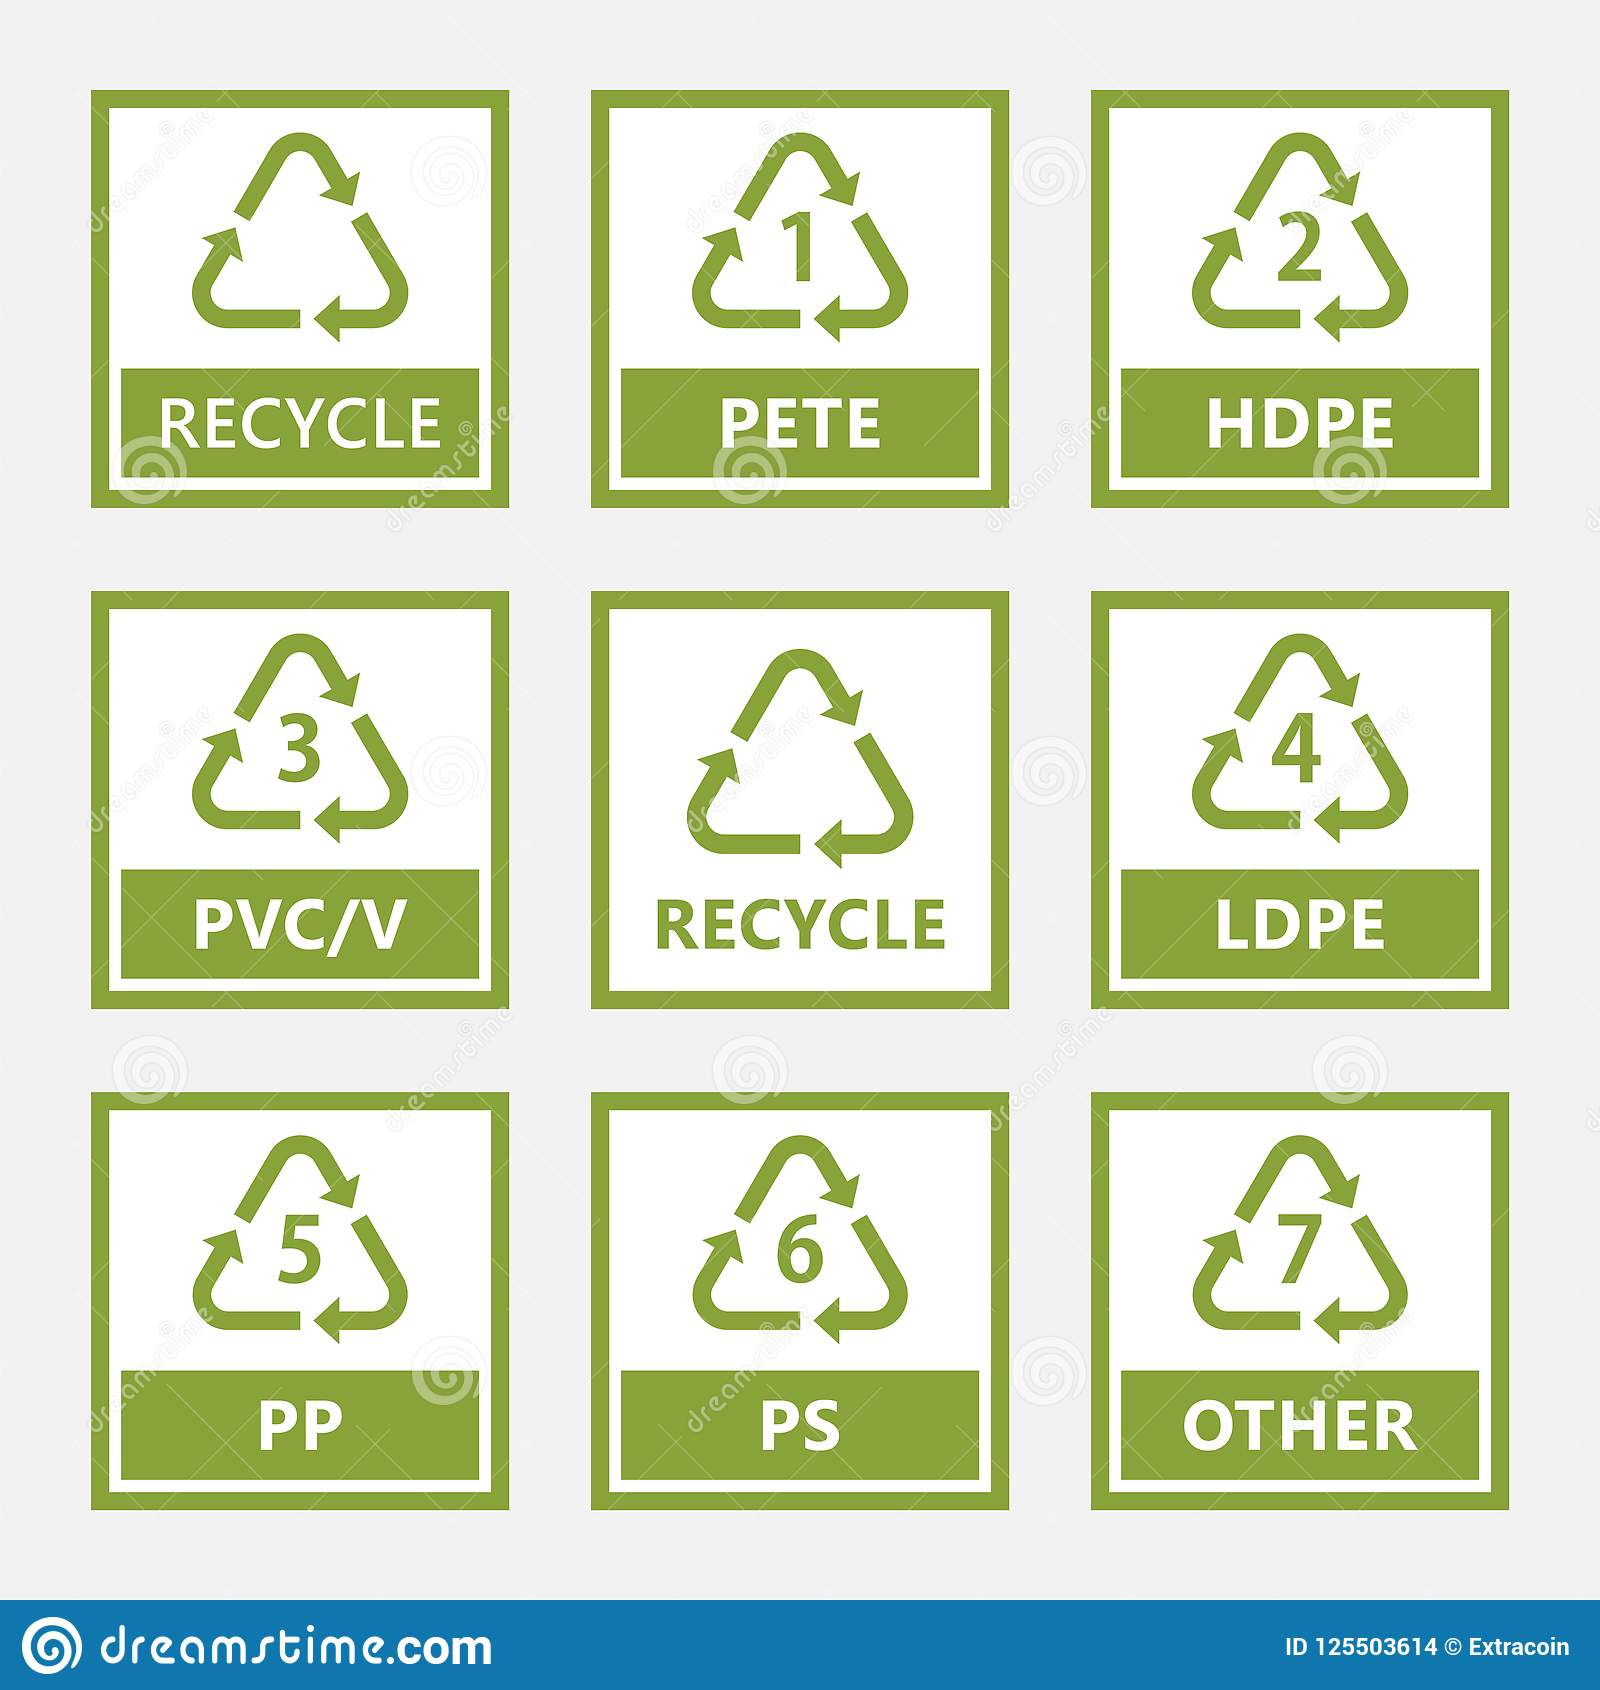 Recycling Symbol For Different Types Of Plastic Material Stock